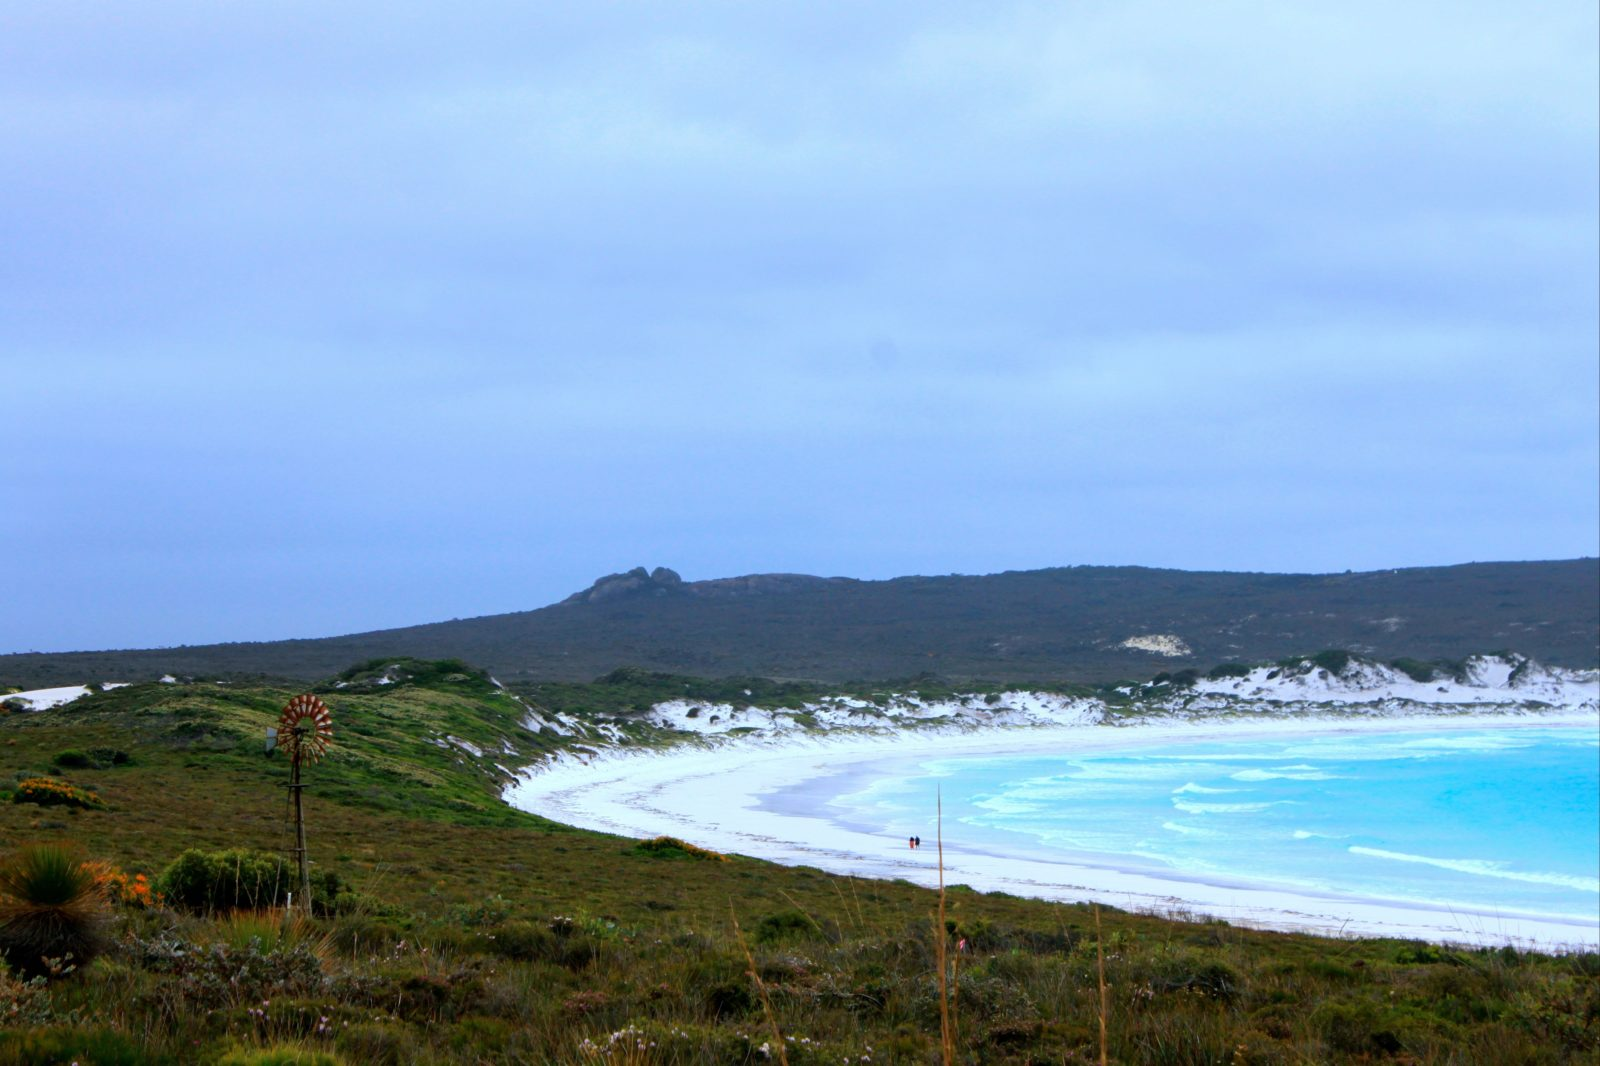 Mississippi Hill and Rossiter Bay, Esperance, Western Australia